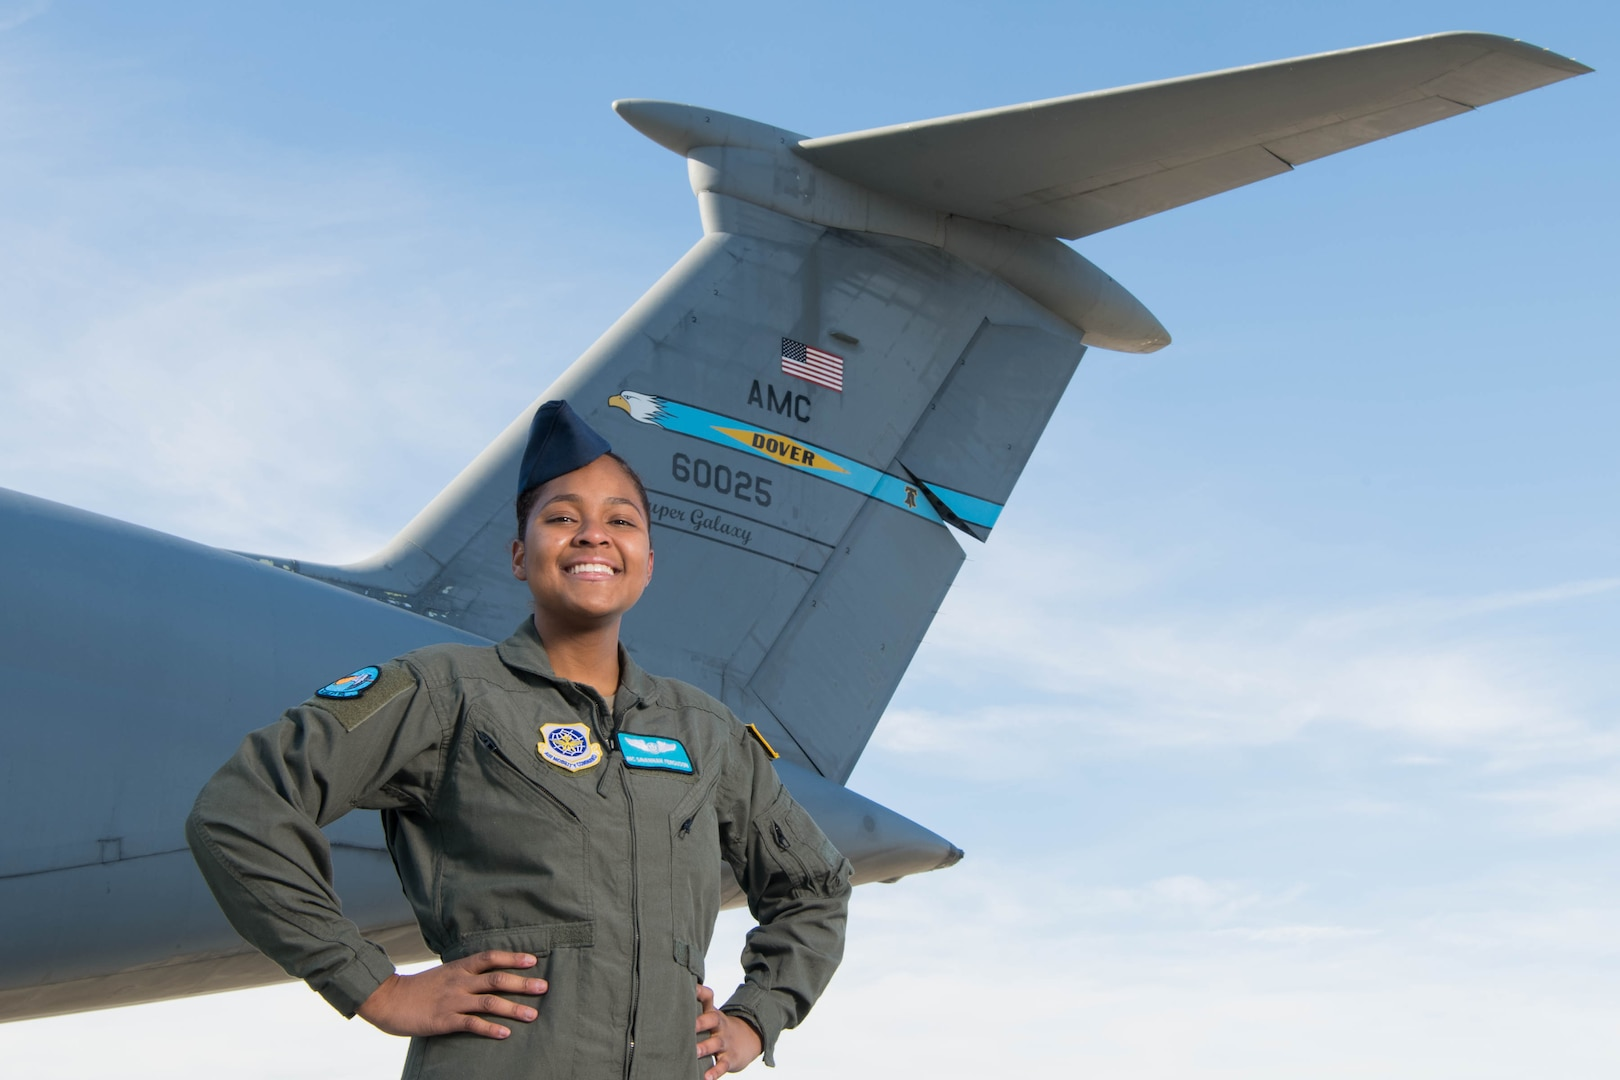 Airman 1st Class Savannah Ferguson, 9th Airlift Squadron loadmaster, celebrates Black History Month by representing various minority groups at Dover Air Force Base, Delaware, Feb. 17, 2021. The daughter of a Puerto Rican mother and Jamaican father, Ferguson grew up as a bridge between Hispanic and African-American cultures. After being assigned to Dover Air Force Base, Ferguson recognized that she had a personal responsibility as a female, Hispanic and African-American Airman within a predominantly white, male career field to share her experiences in promotion of diversity and inclusion. (U.S. Air Force photo by Mauricio Campino)